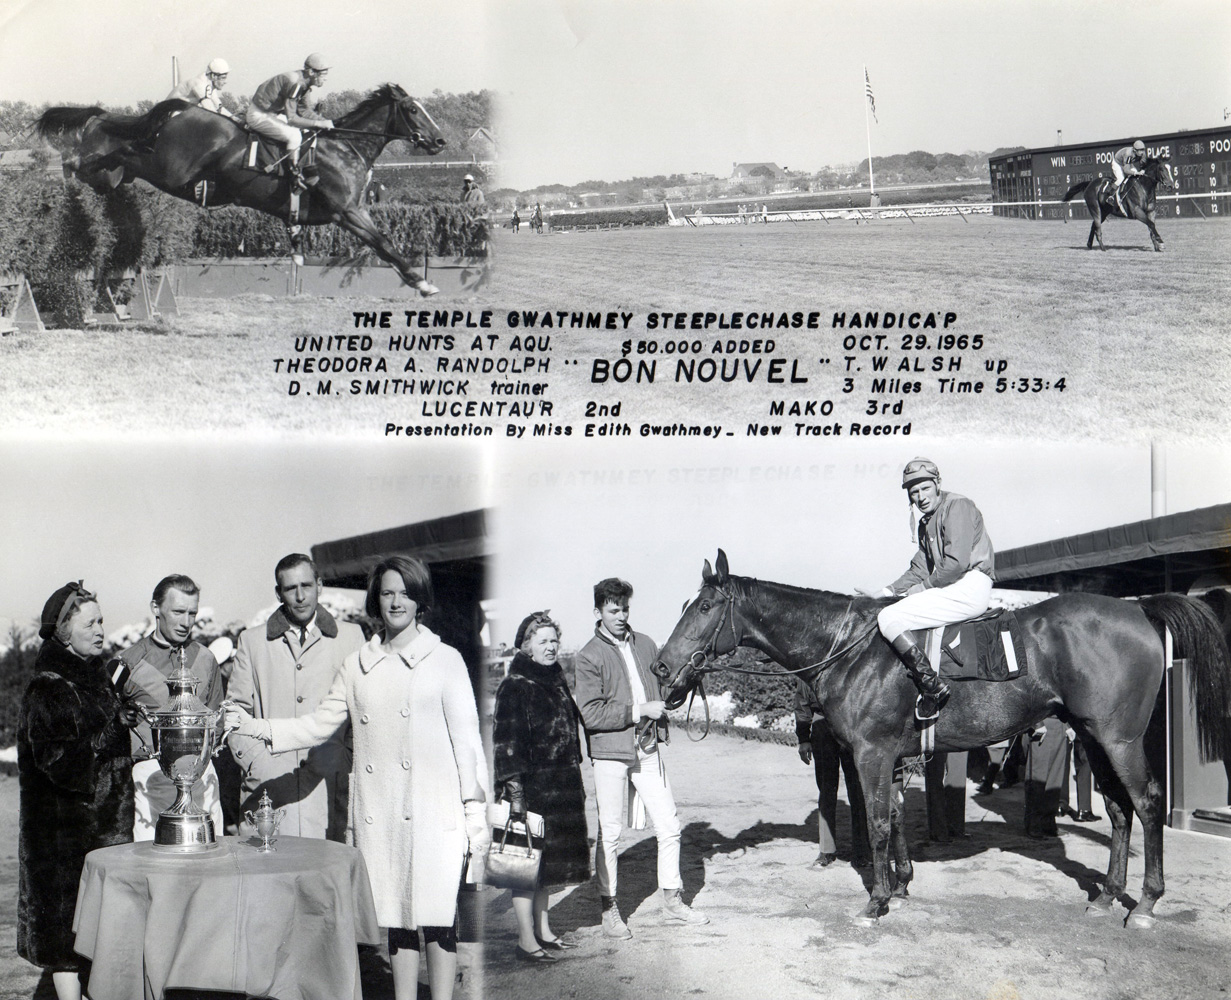 Win composite from the 1965 Temple Gwathmey Steeplechase Handicap at Aqueduct, won by Tommy Walsh and Bon Nouvel (NYRA/Museum Collection)